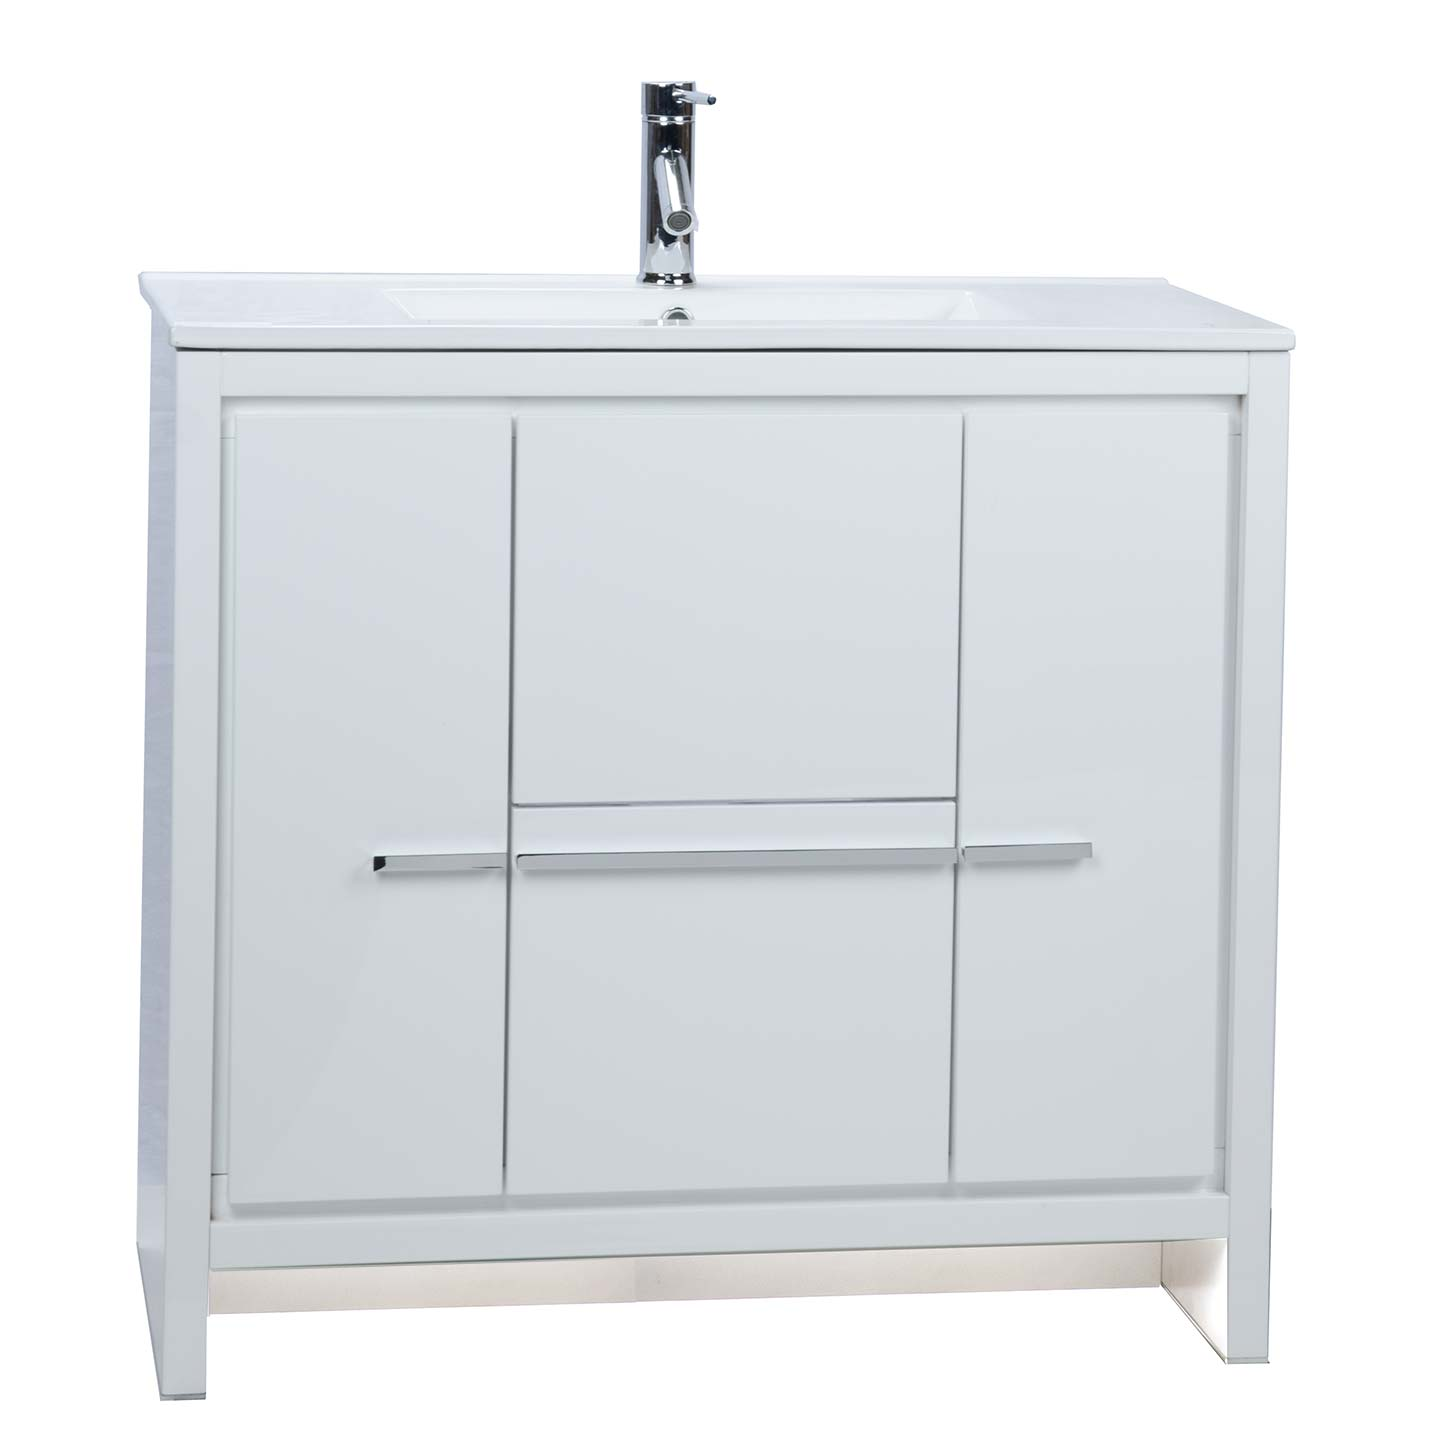 Buy cbi enna 36 inch modern bathroom vanity high gloss white tn la900 hgw on White bathroom vanity cabinets